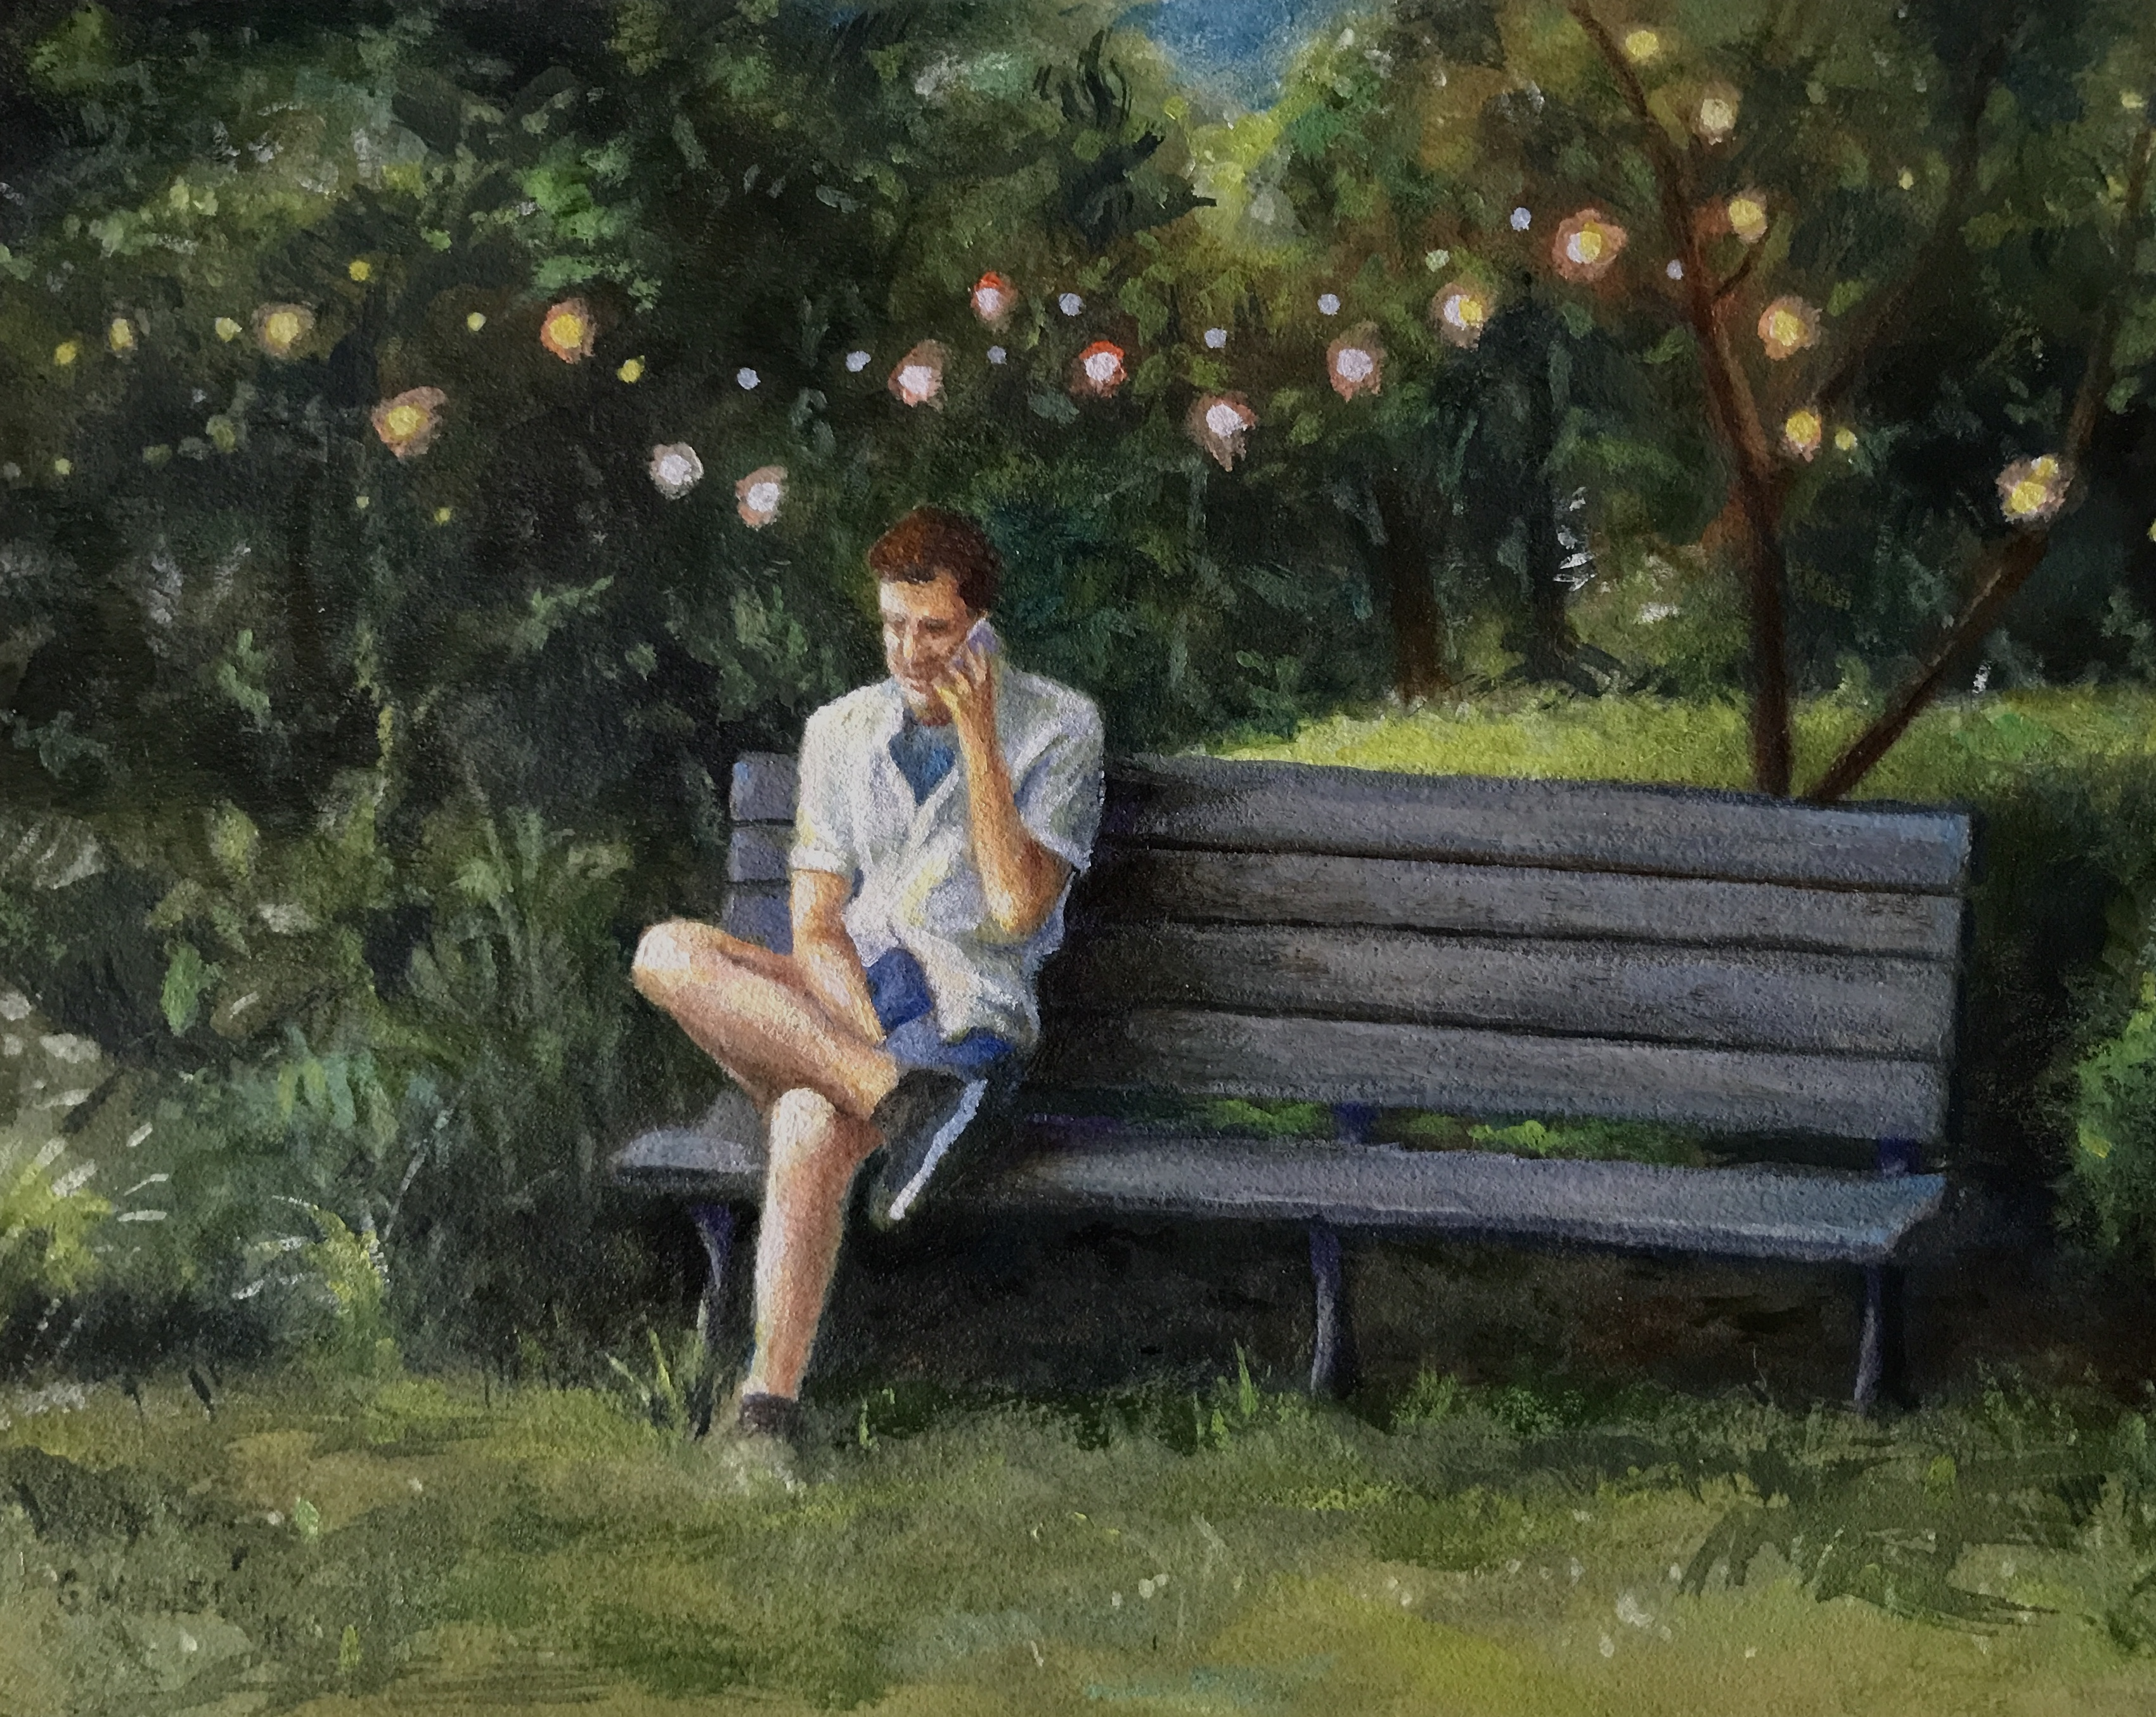 Scenic painting of a man on a bench at a garden party